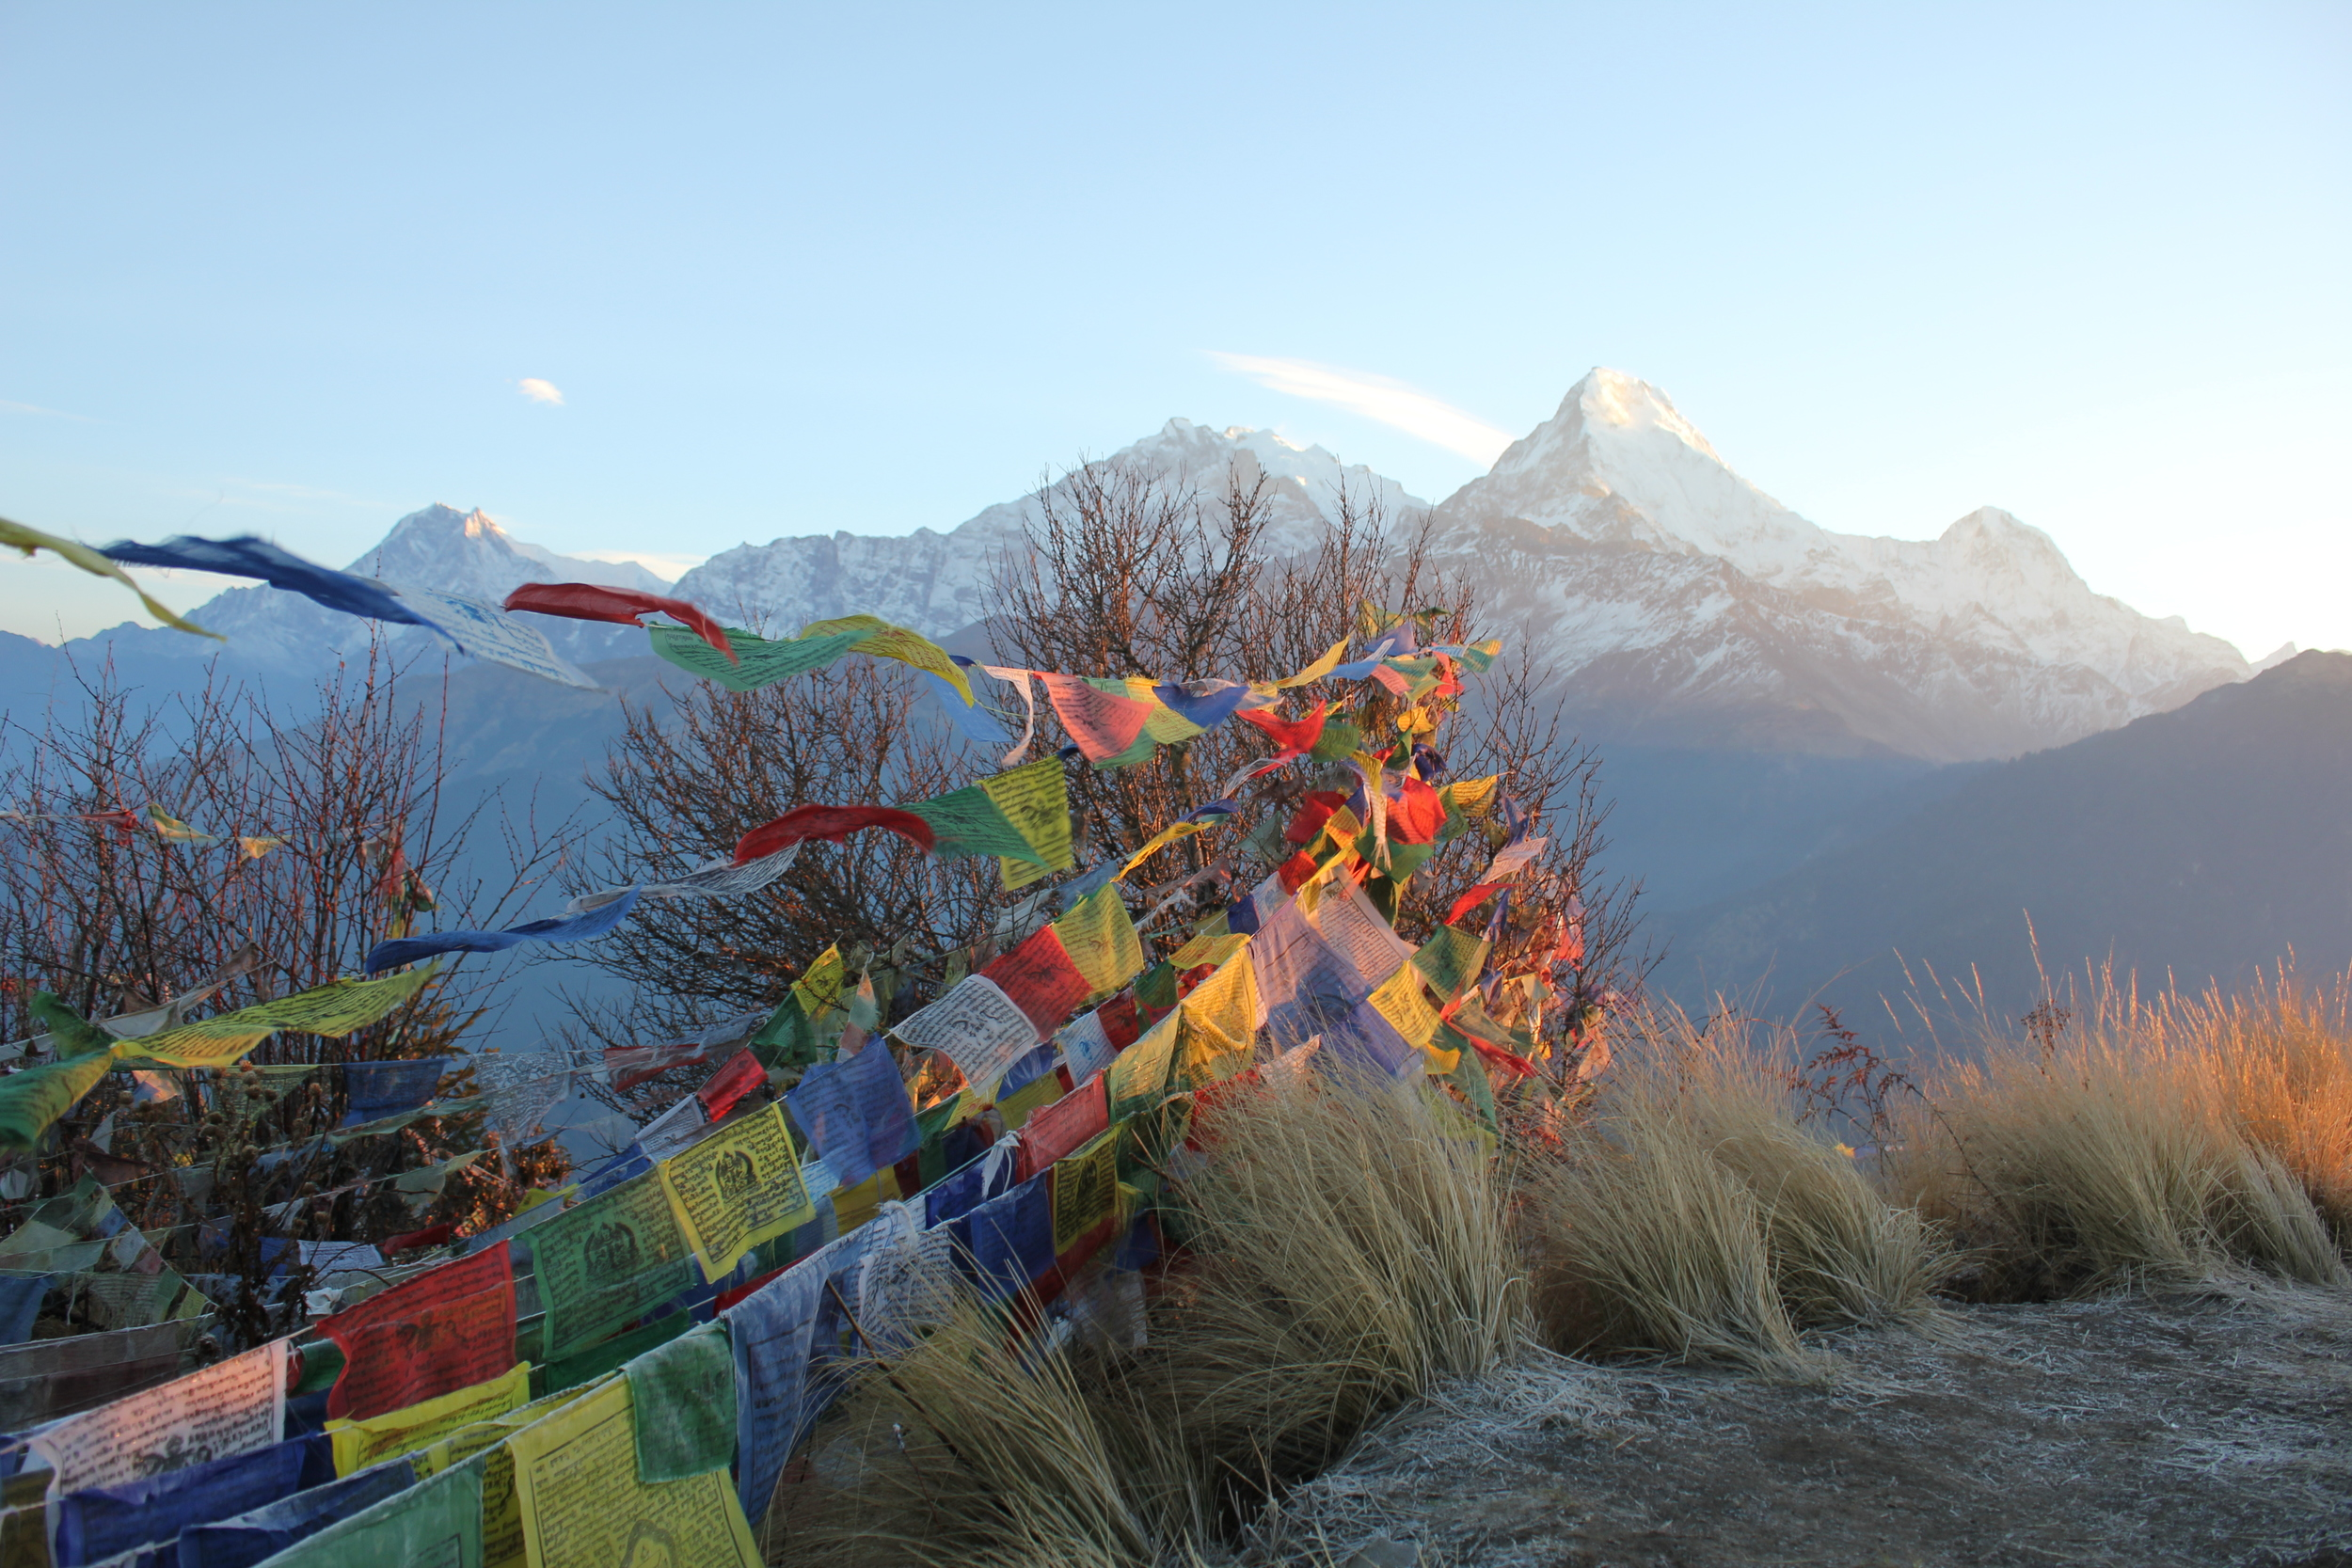 View from the top of Poon Hill at 3,210 meters (10,531 feet),on the Annapurna Circuit in Nepal.